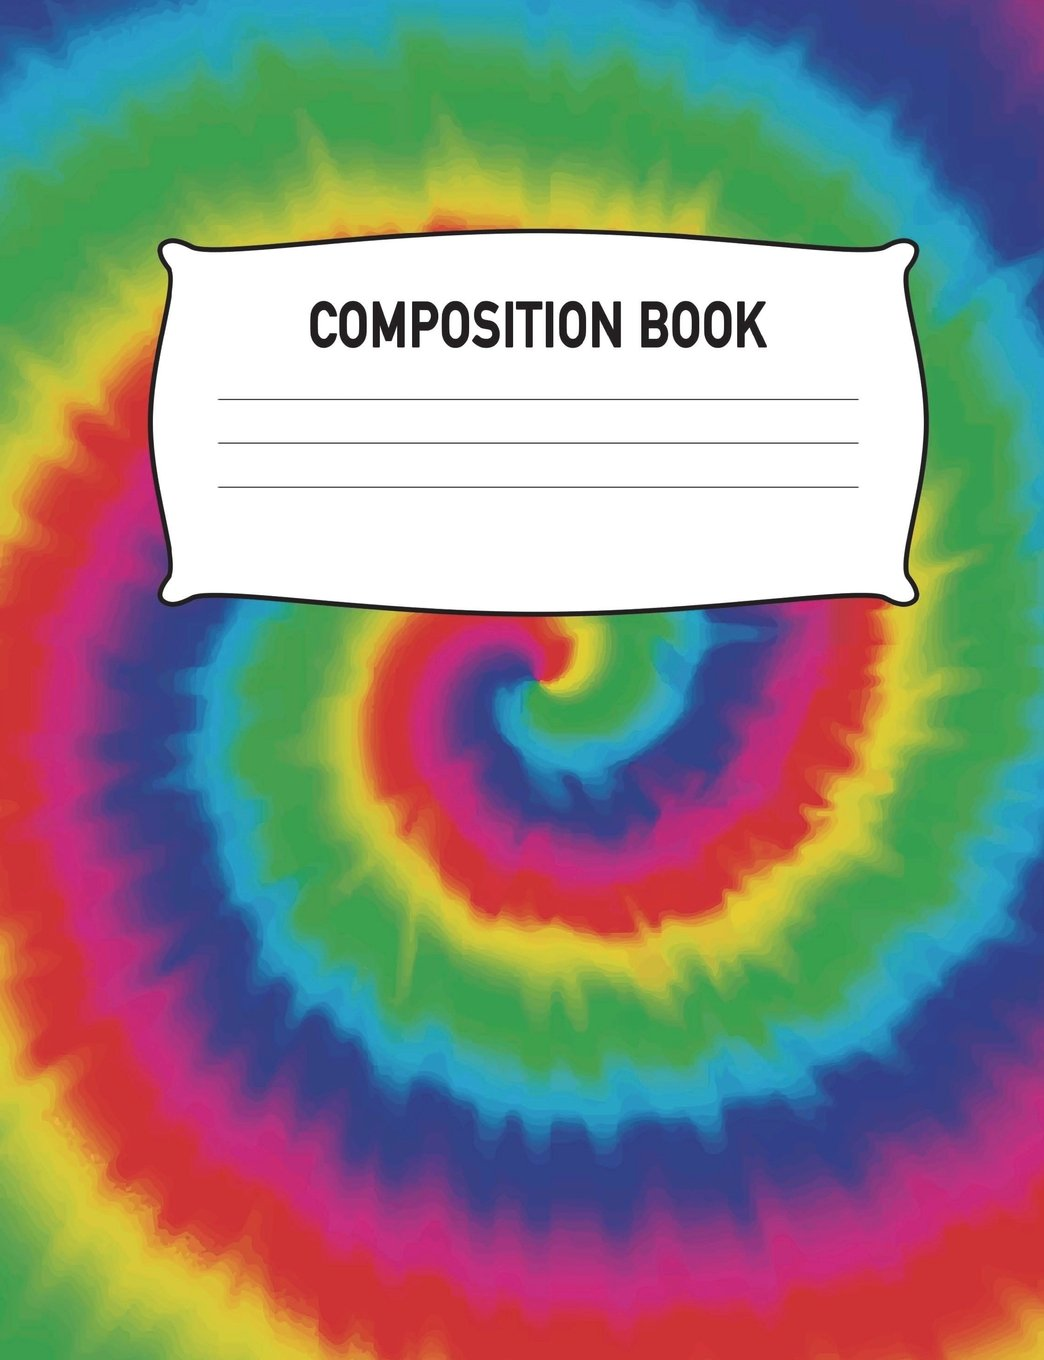 Download Composition Book: Composition Notebook Wide Ruled Tie Dye Rainbow Diary Practice Journal Organizer: Adults Kids Youth: University, High School, ... 7.44 x 9.69 Lined Paper 120 Pages (60 Sheets) pdf